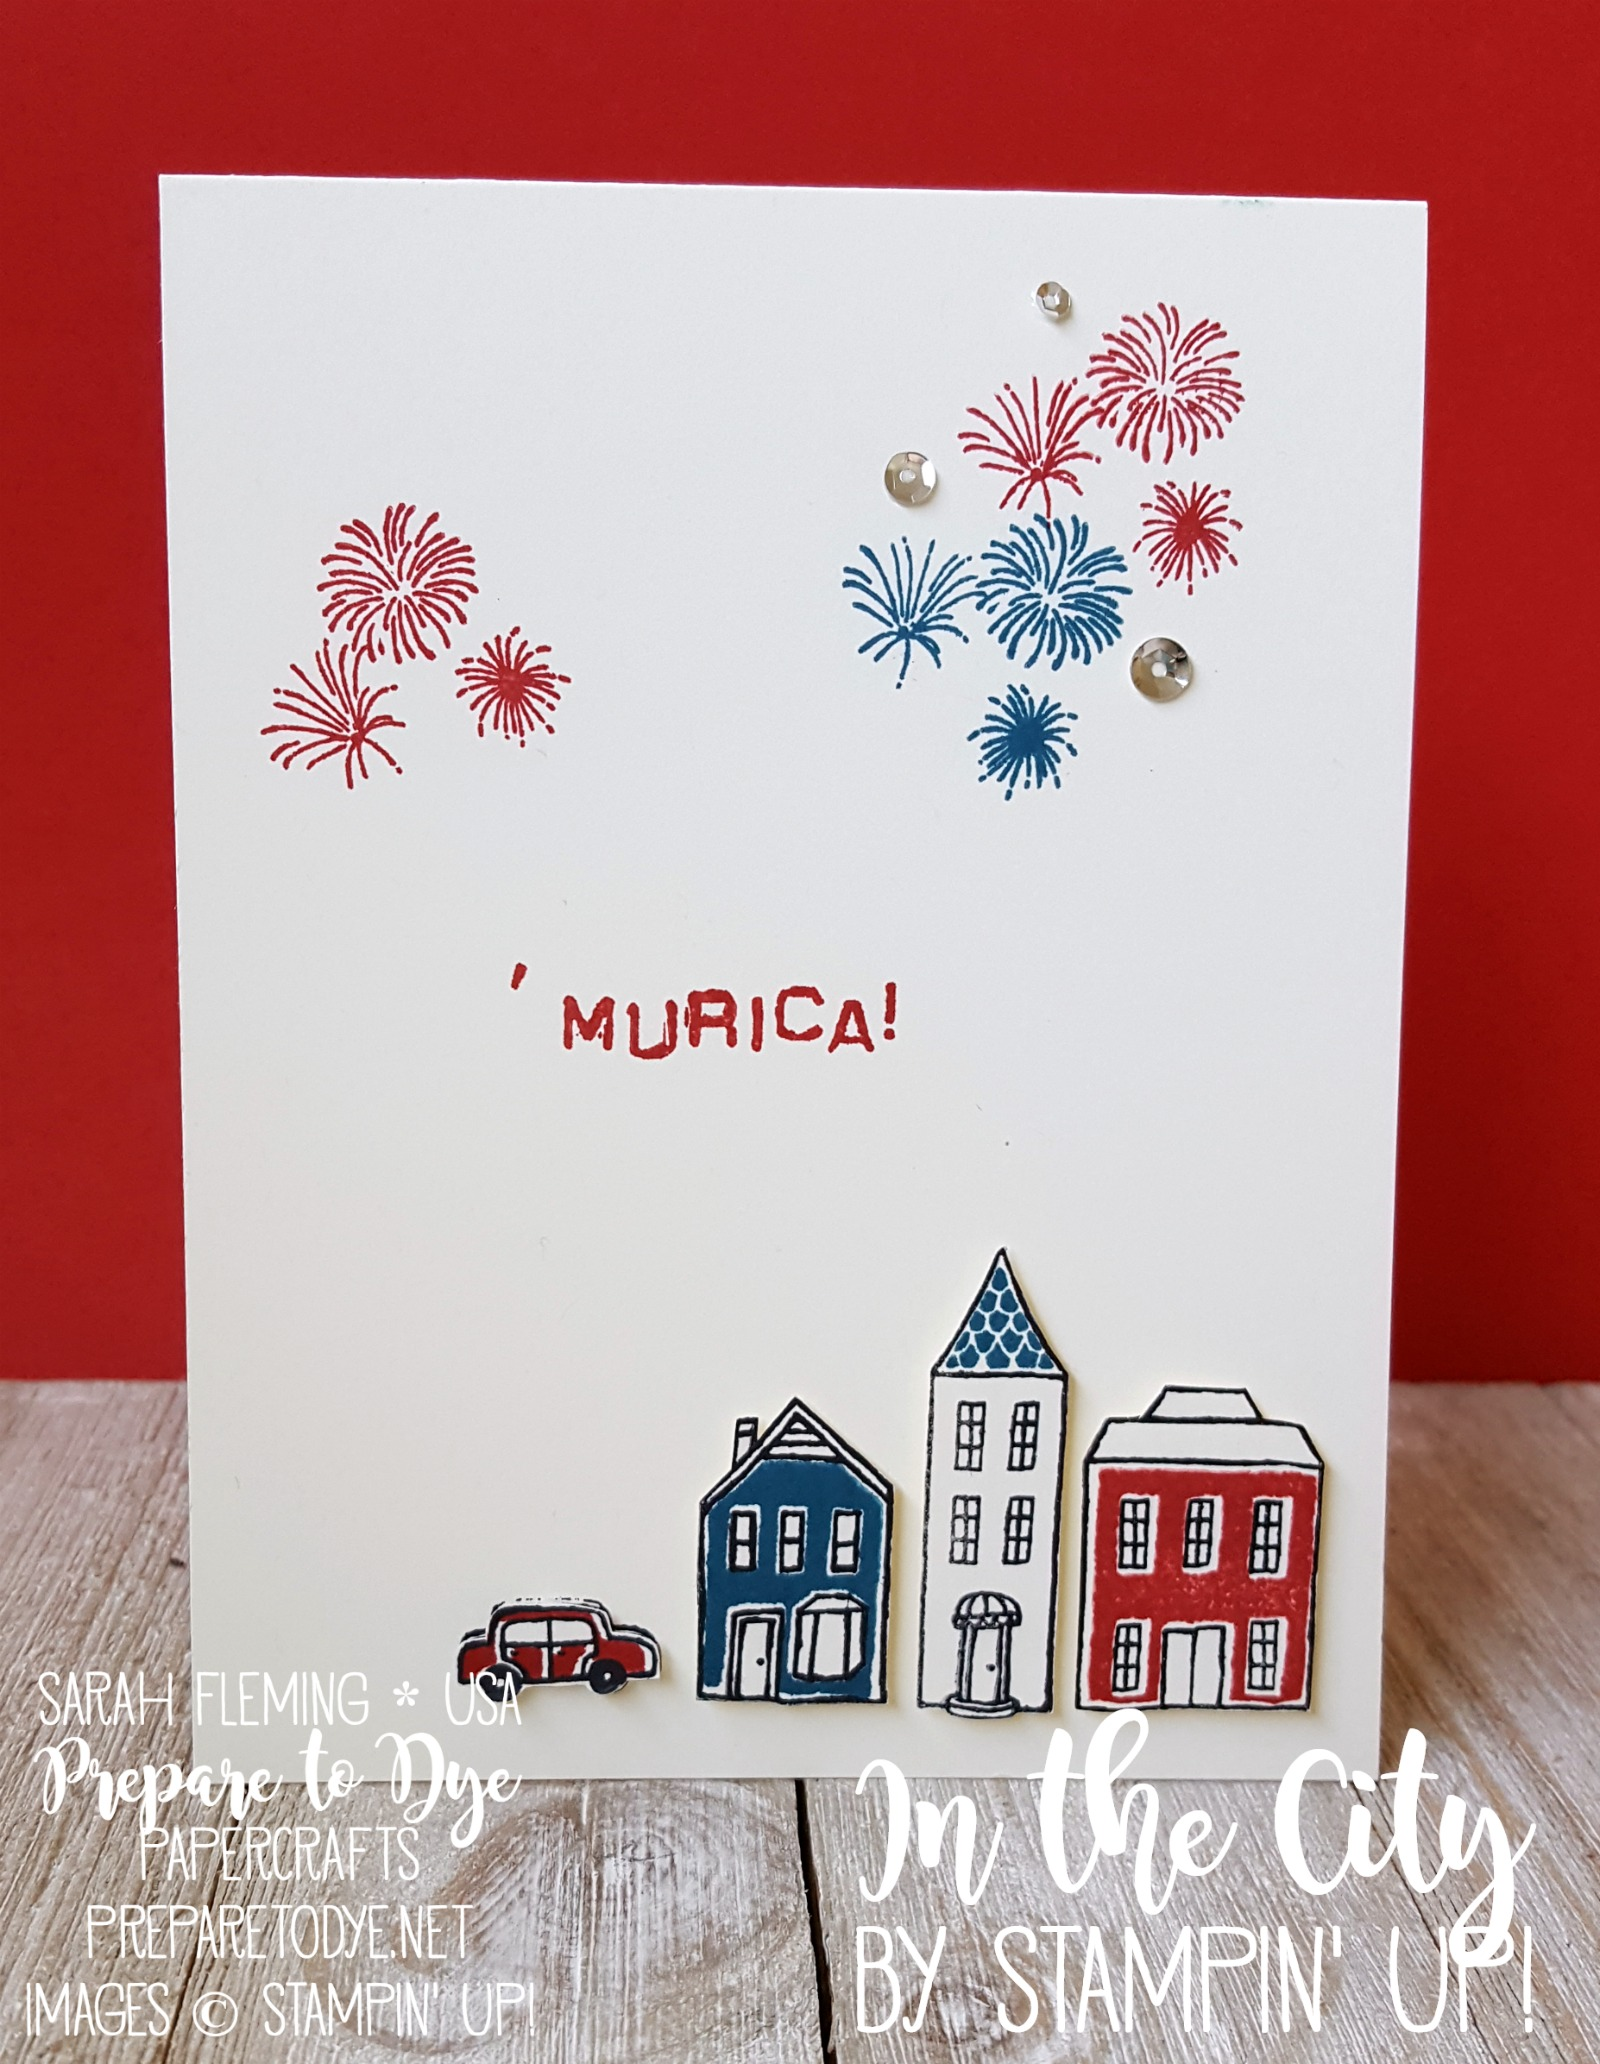 Stampin' Up! In the City - handmade Independence Day card - 4th of July - CAS - Sarah Fleming - Prepare to Dye Papercrafts